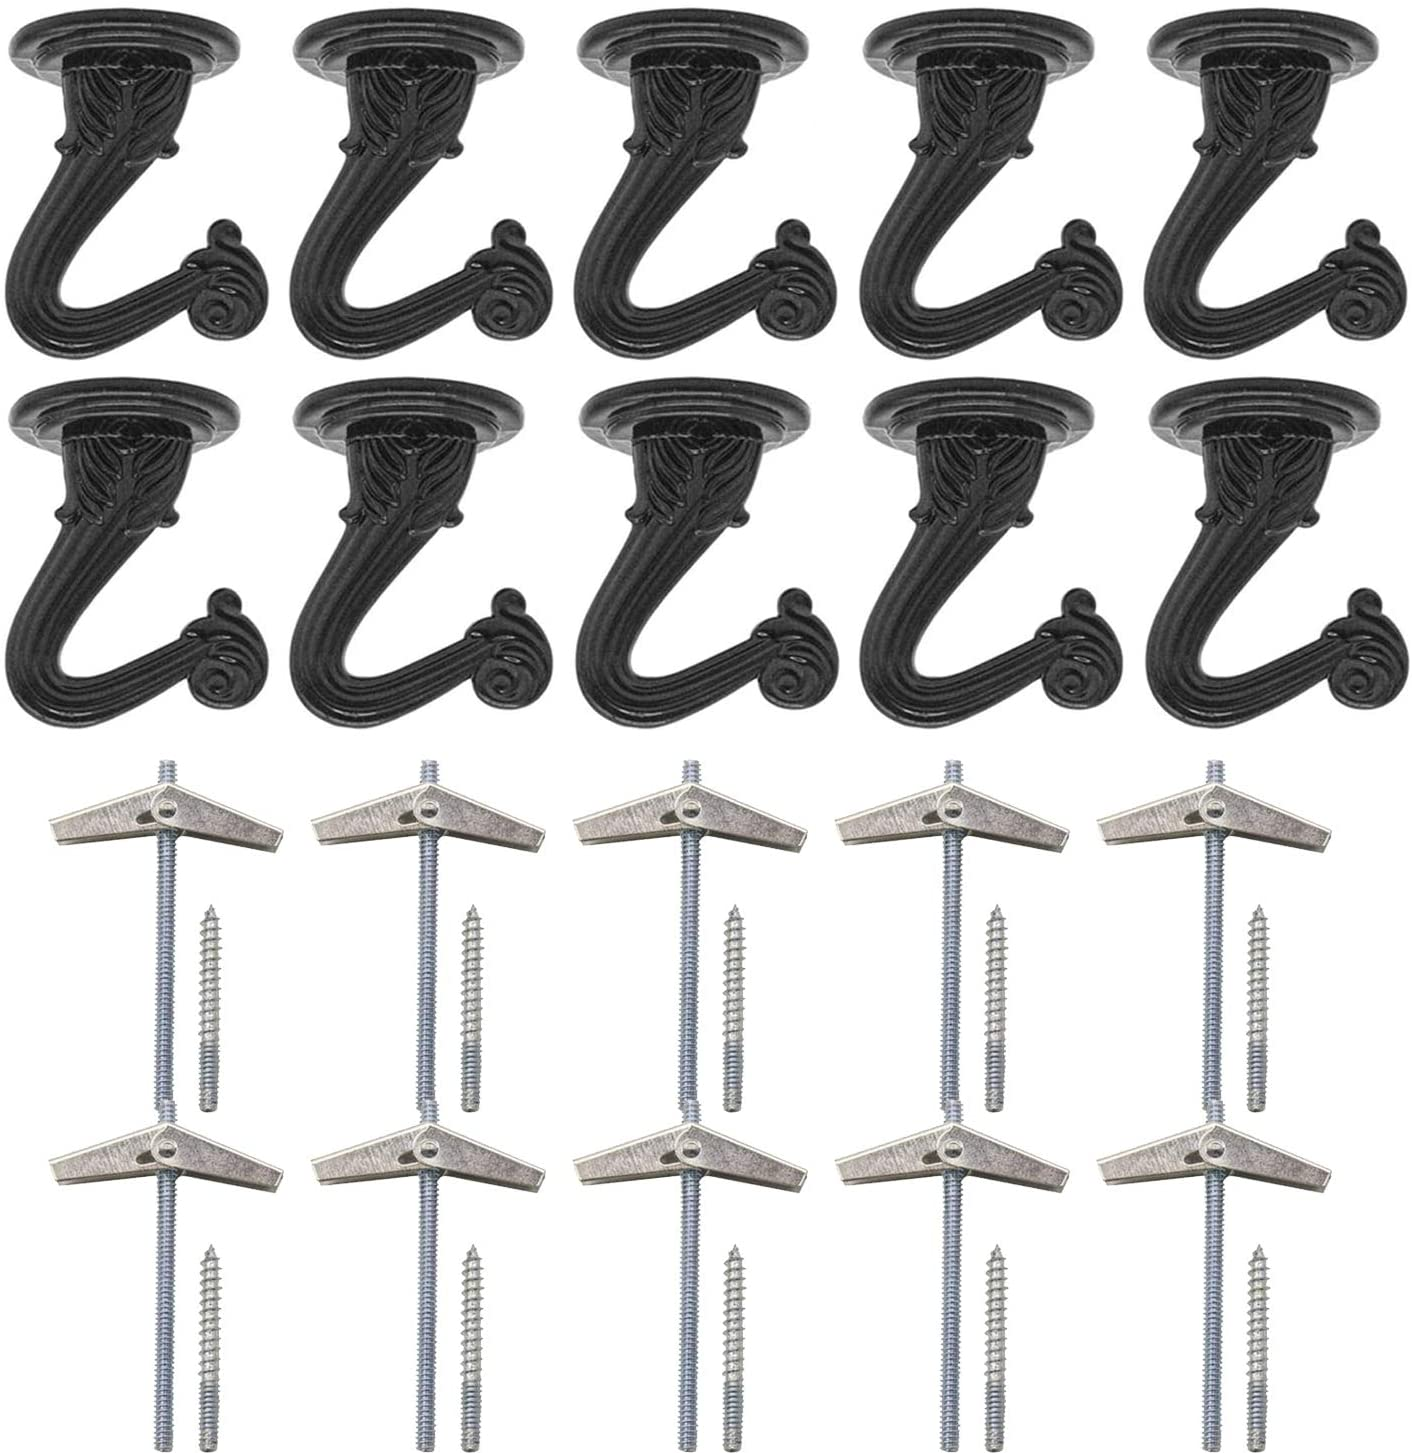 Alpurple 10 Sets Brass Ceiling Hook -Metal Heavy Duty Swag Ceiling Hooks with Hardware and Toggle Wings for Hanging Plants, Chandeliers Ceiling Installation Cavity Wall Fixing